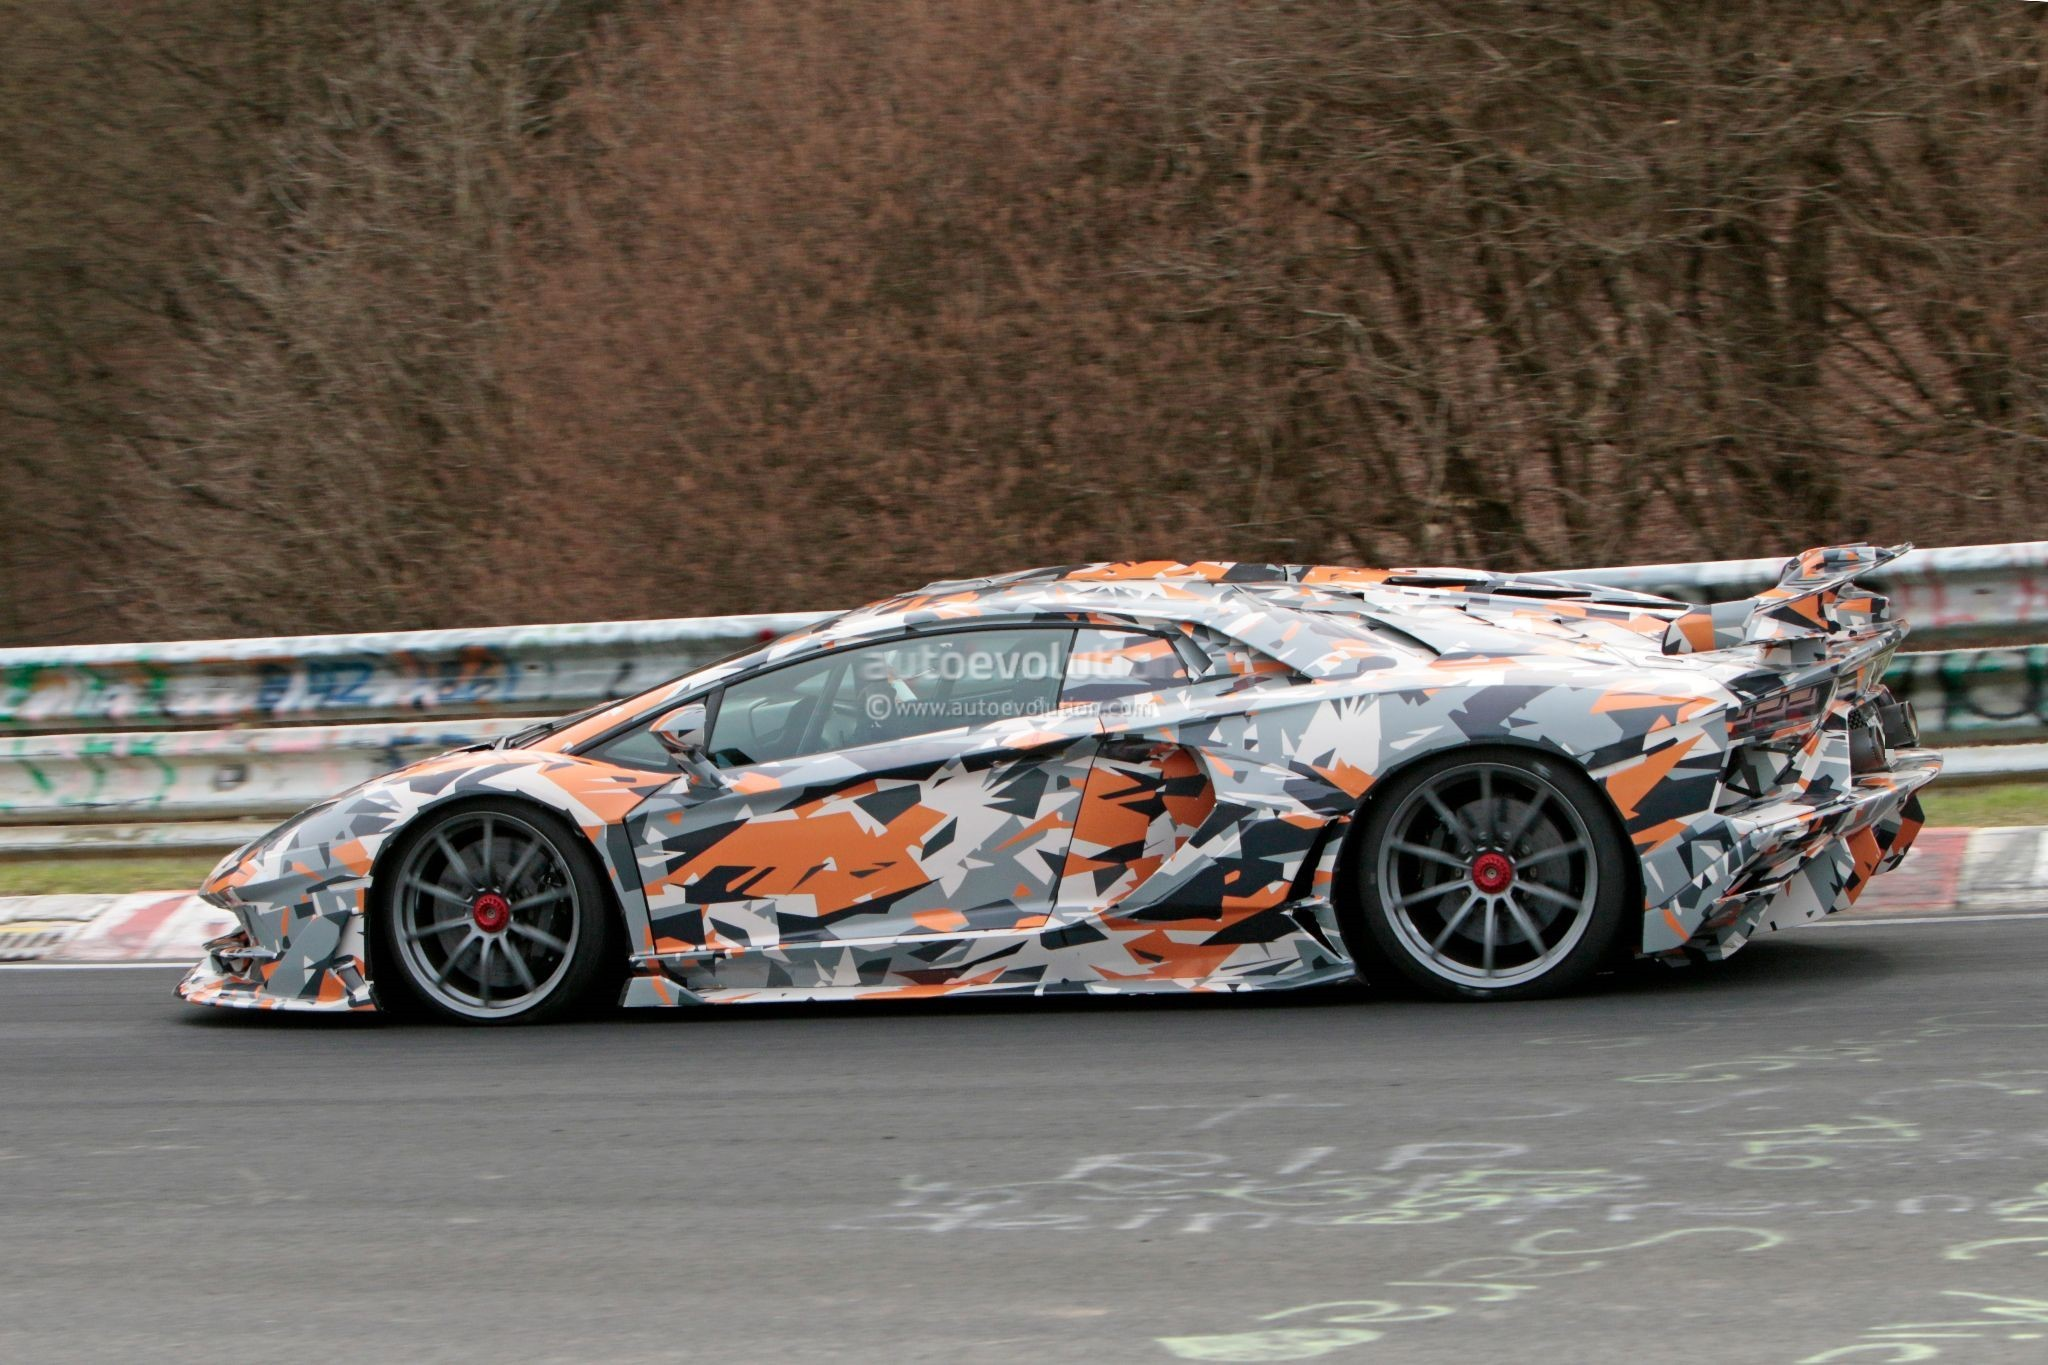 2019 Lamborghini Aventador Svj Looks Serious On Aero In